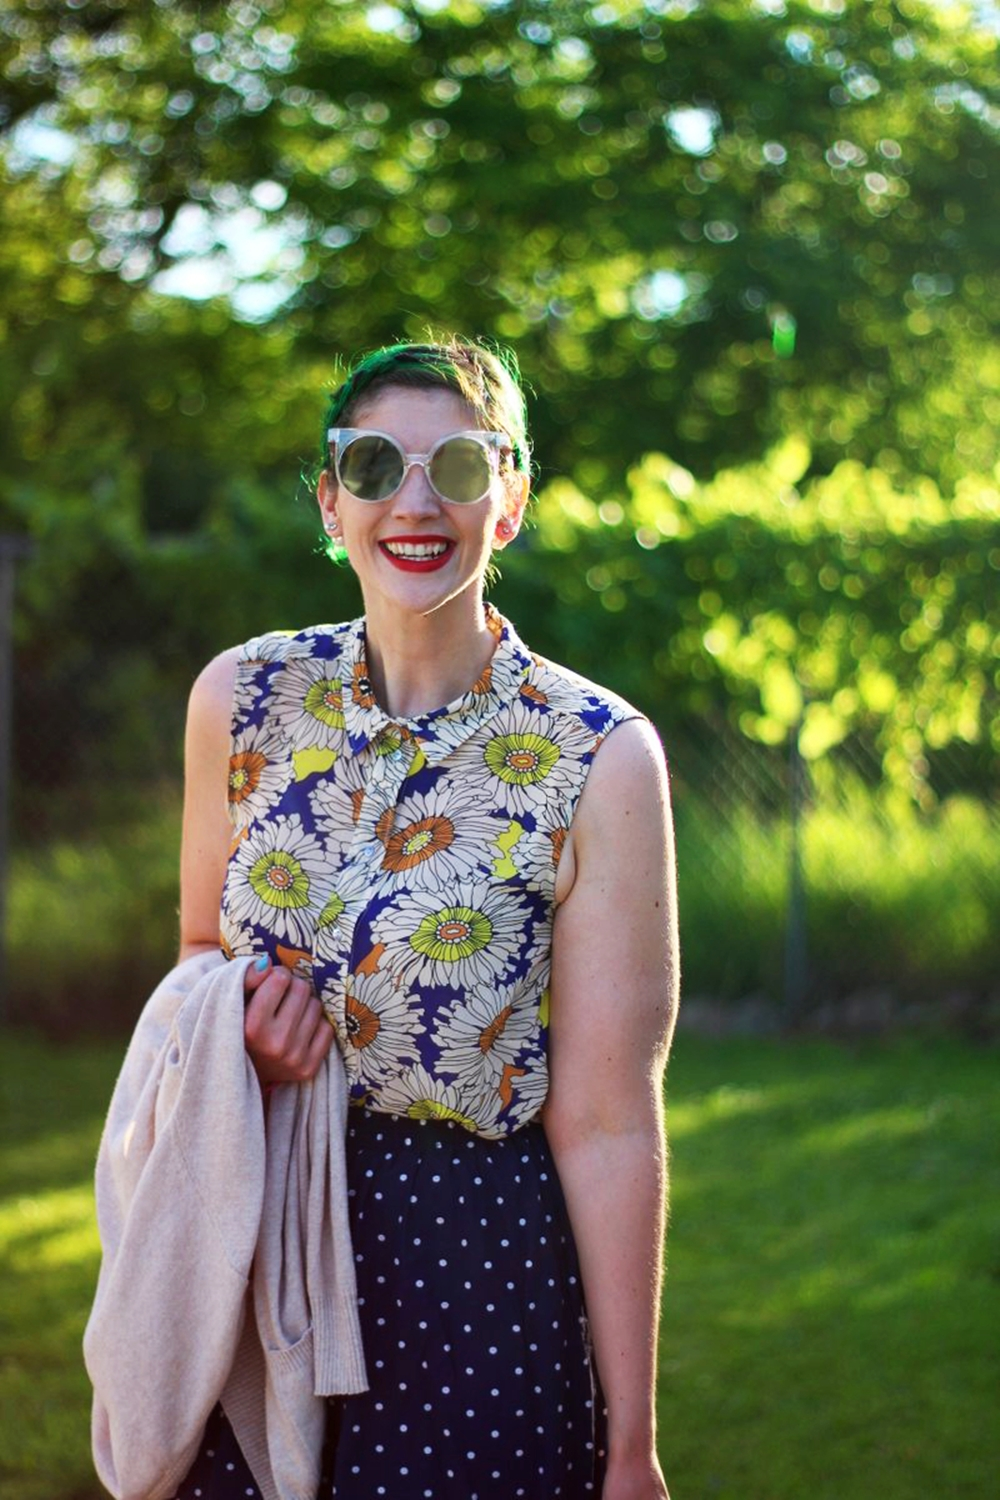 sunglasses-green-hair-vintage-floral-thrifted-summer-outfit-01